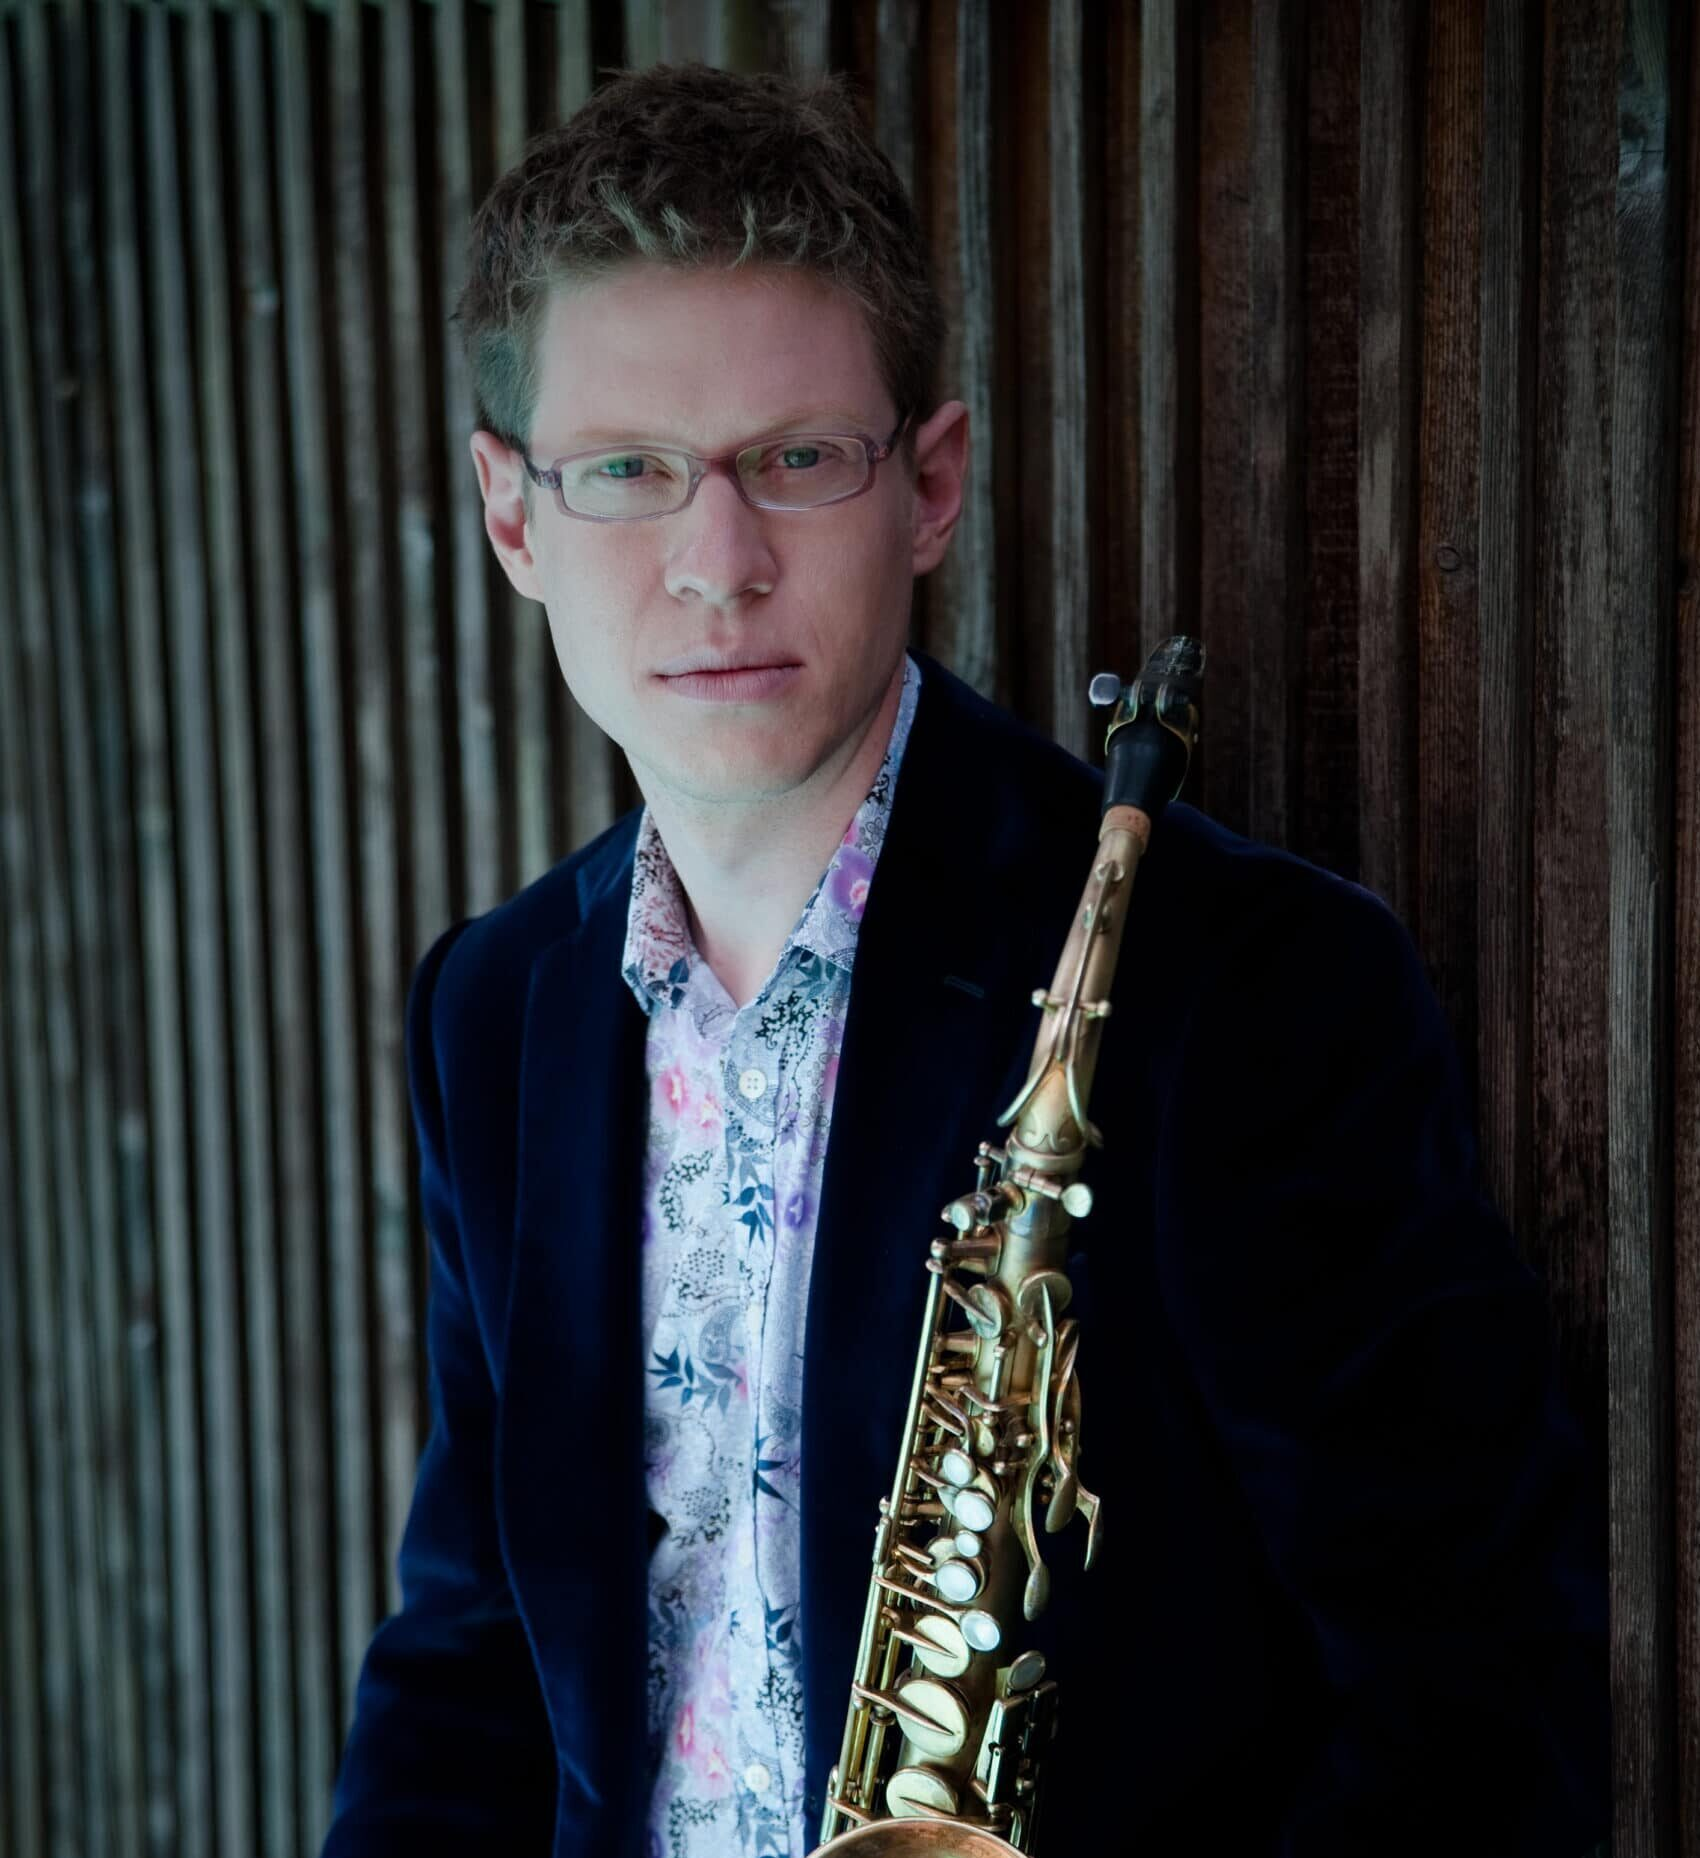 Wallace Halladay standing holding saxophone